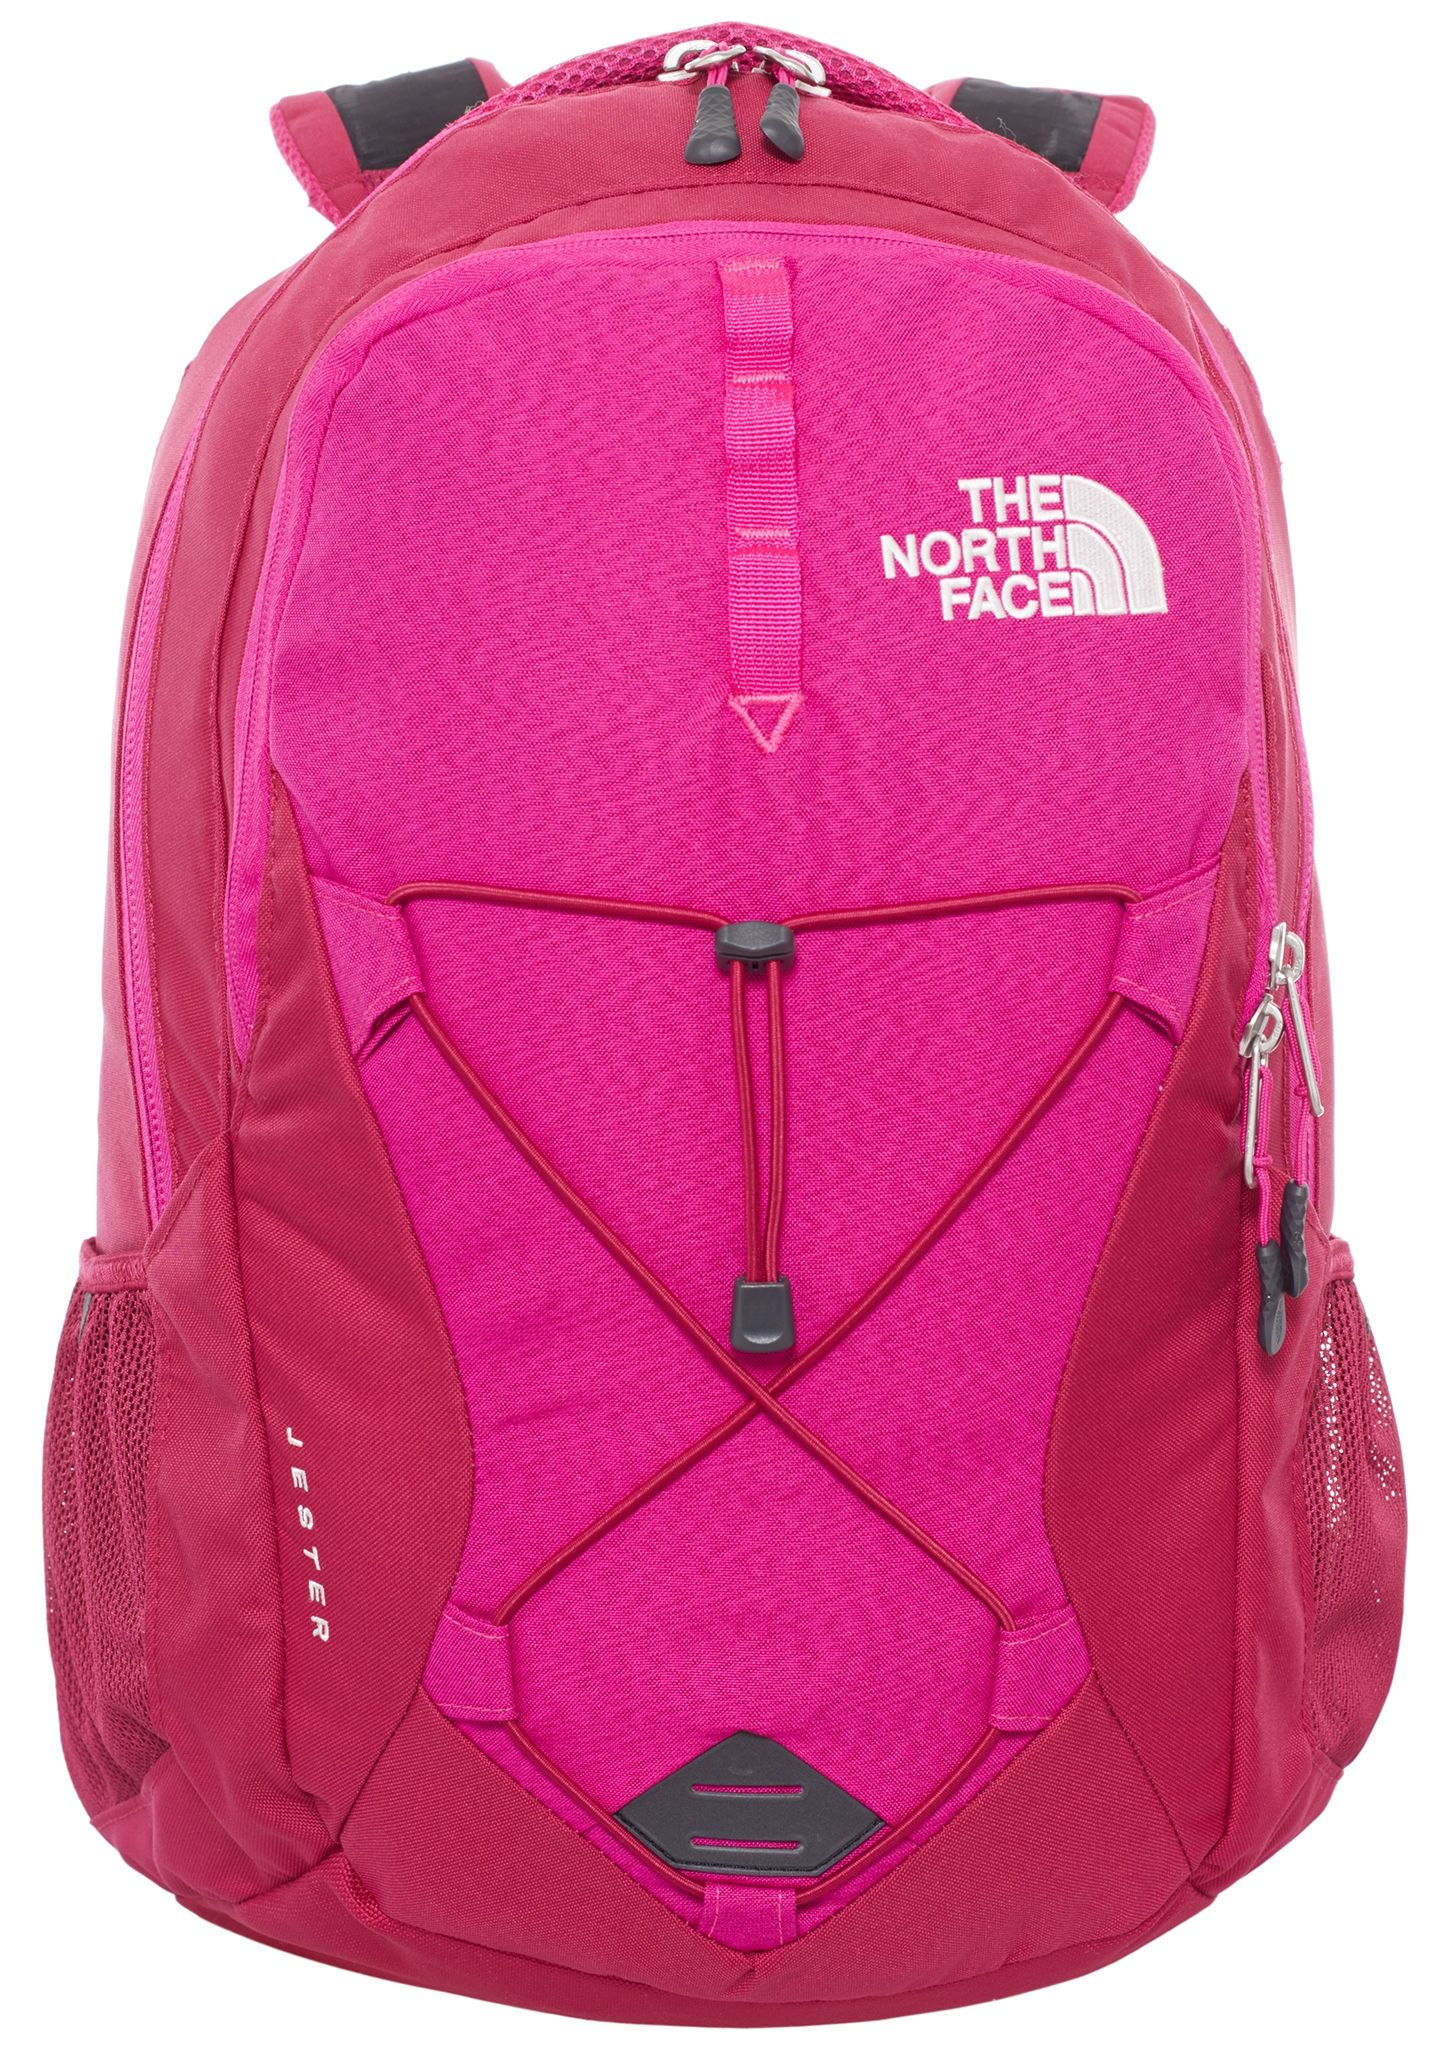 910a5a8380 the north face zaino slovenija